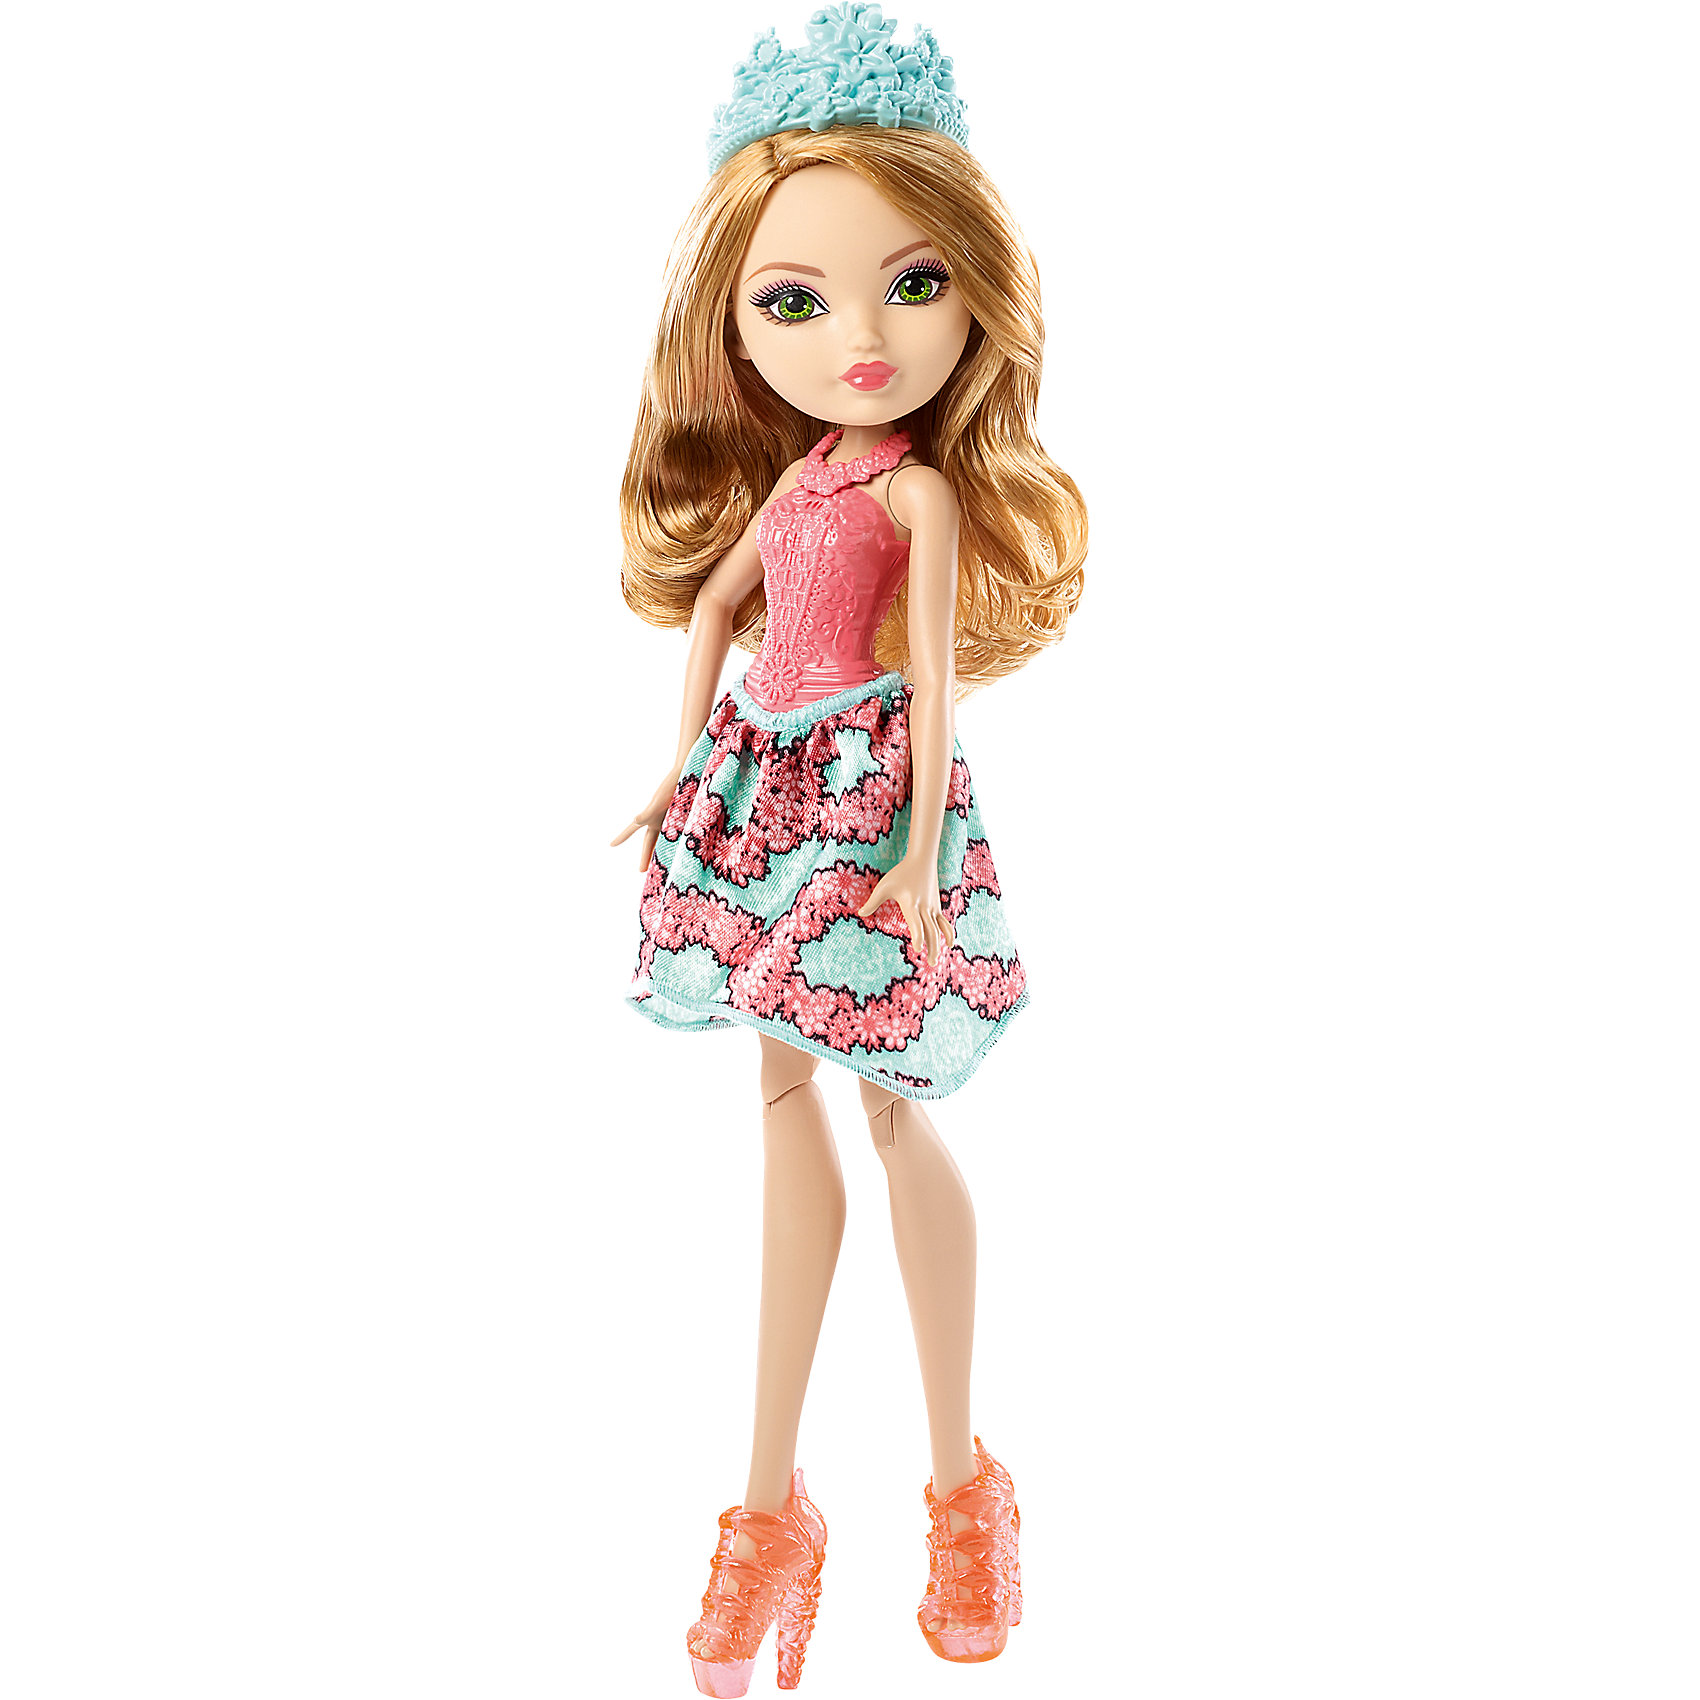 Mattel Кукла Эшлин Элла,  Ever After High ever after high главные герои эшлин элла dlb34 dlb37